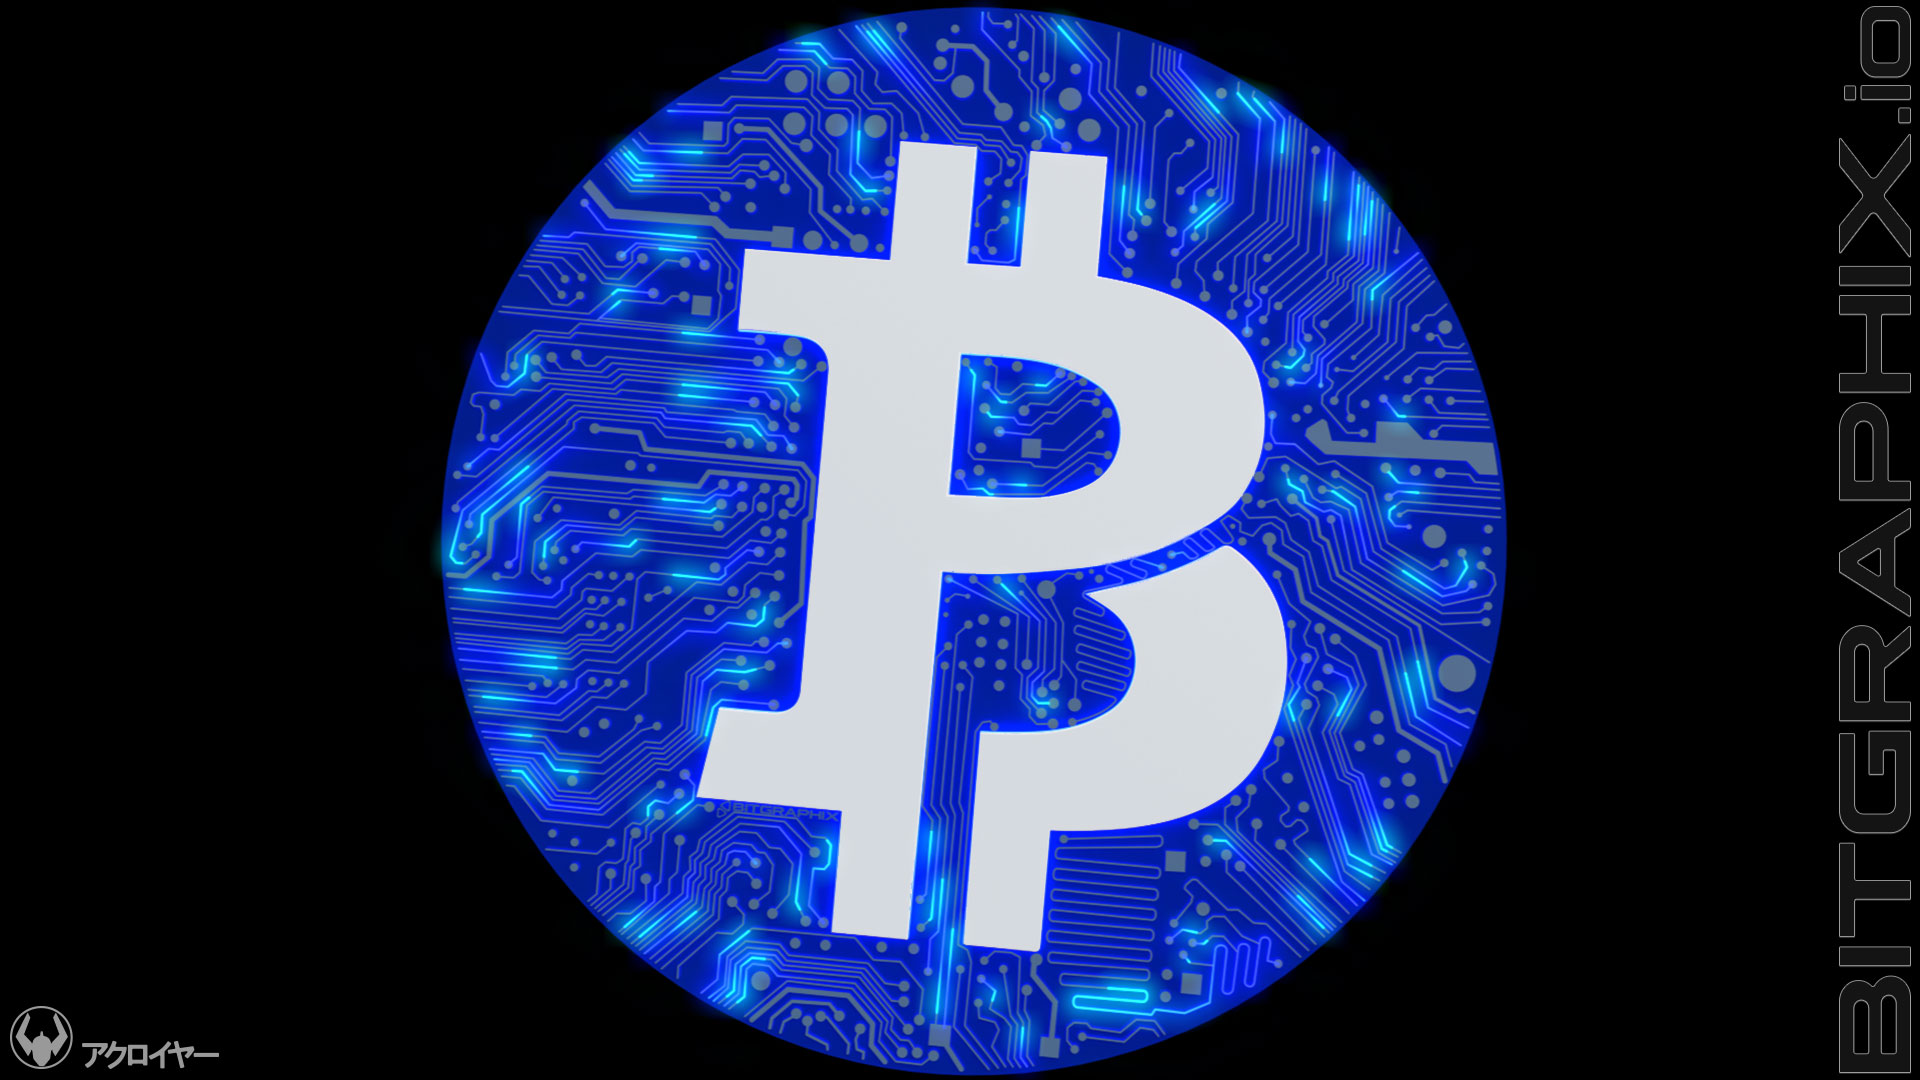 Bitgraphix-BTCP-Circuits-Animation-still-frame-3d-visual-effects-02